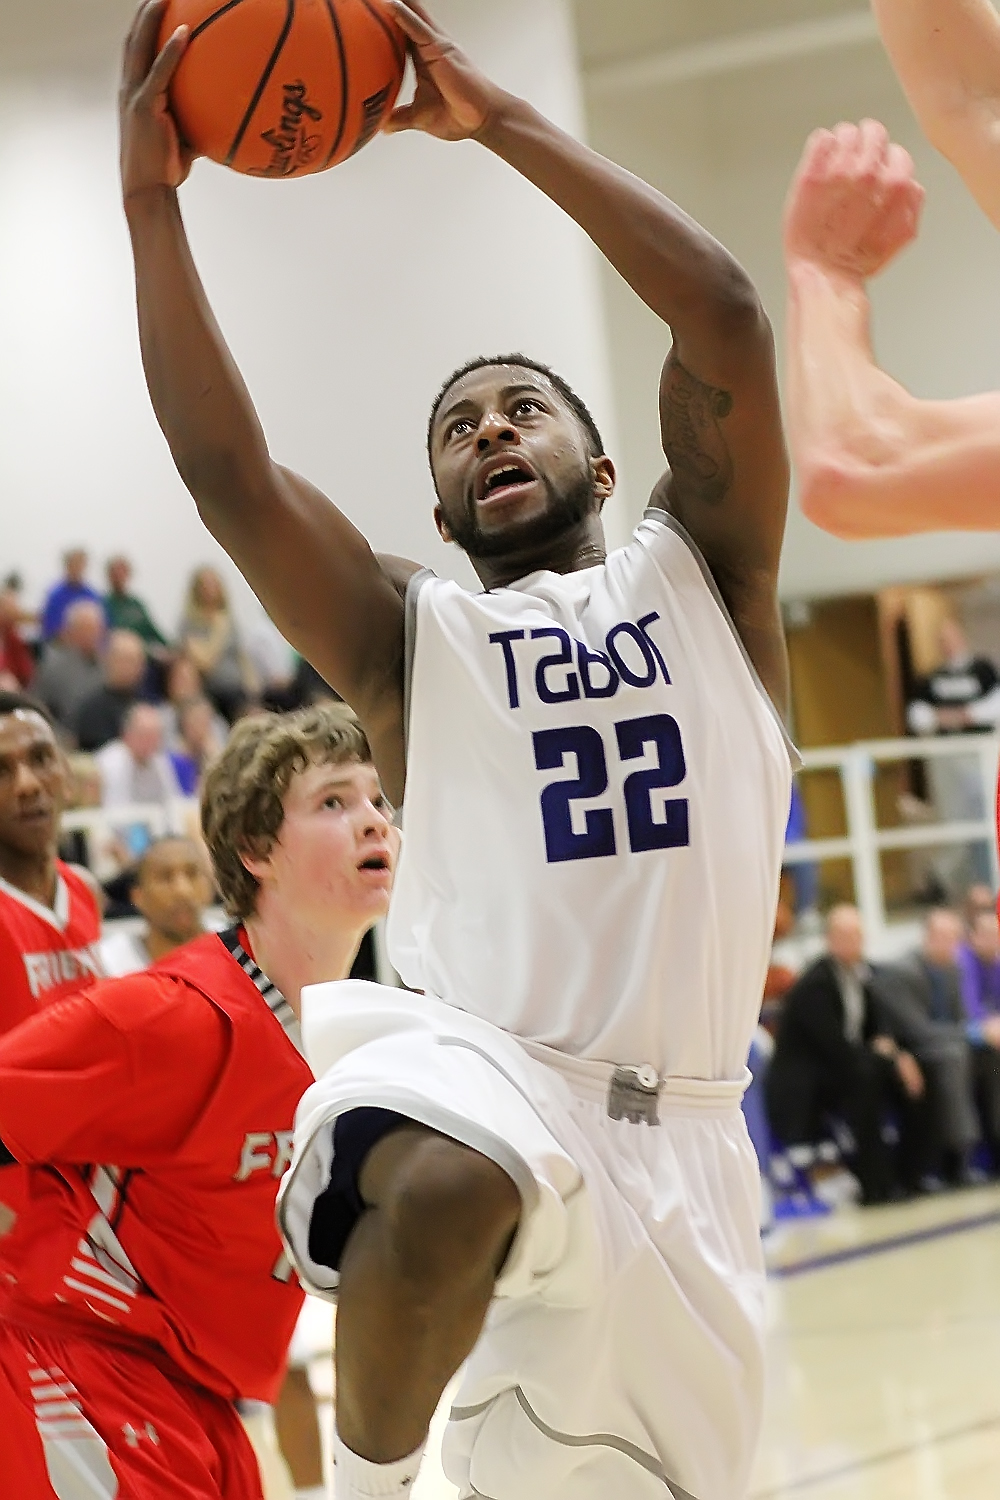 Malik Brooks scores two points for Tabor during the first half against Friends Saturday. Brooks scored a game-high 22 points in Tabor's 73-64 victory over the Falcons. Phyllis Richert Photo